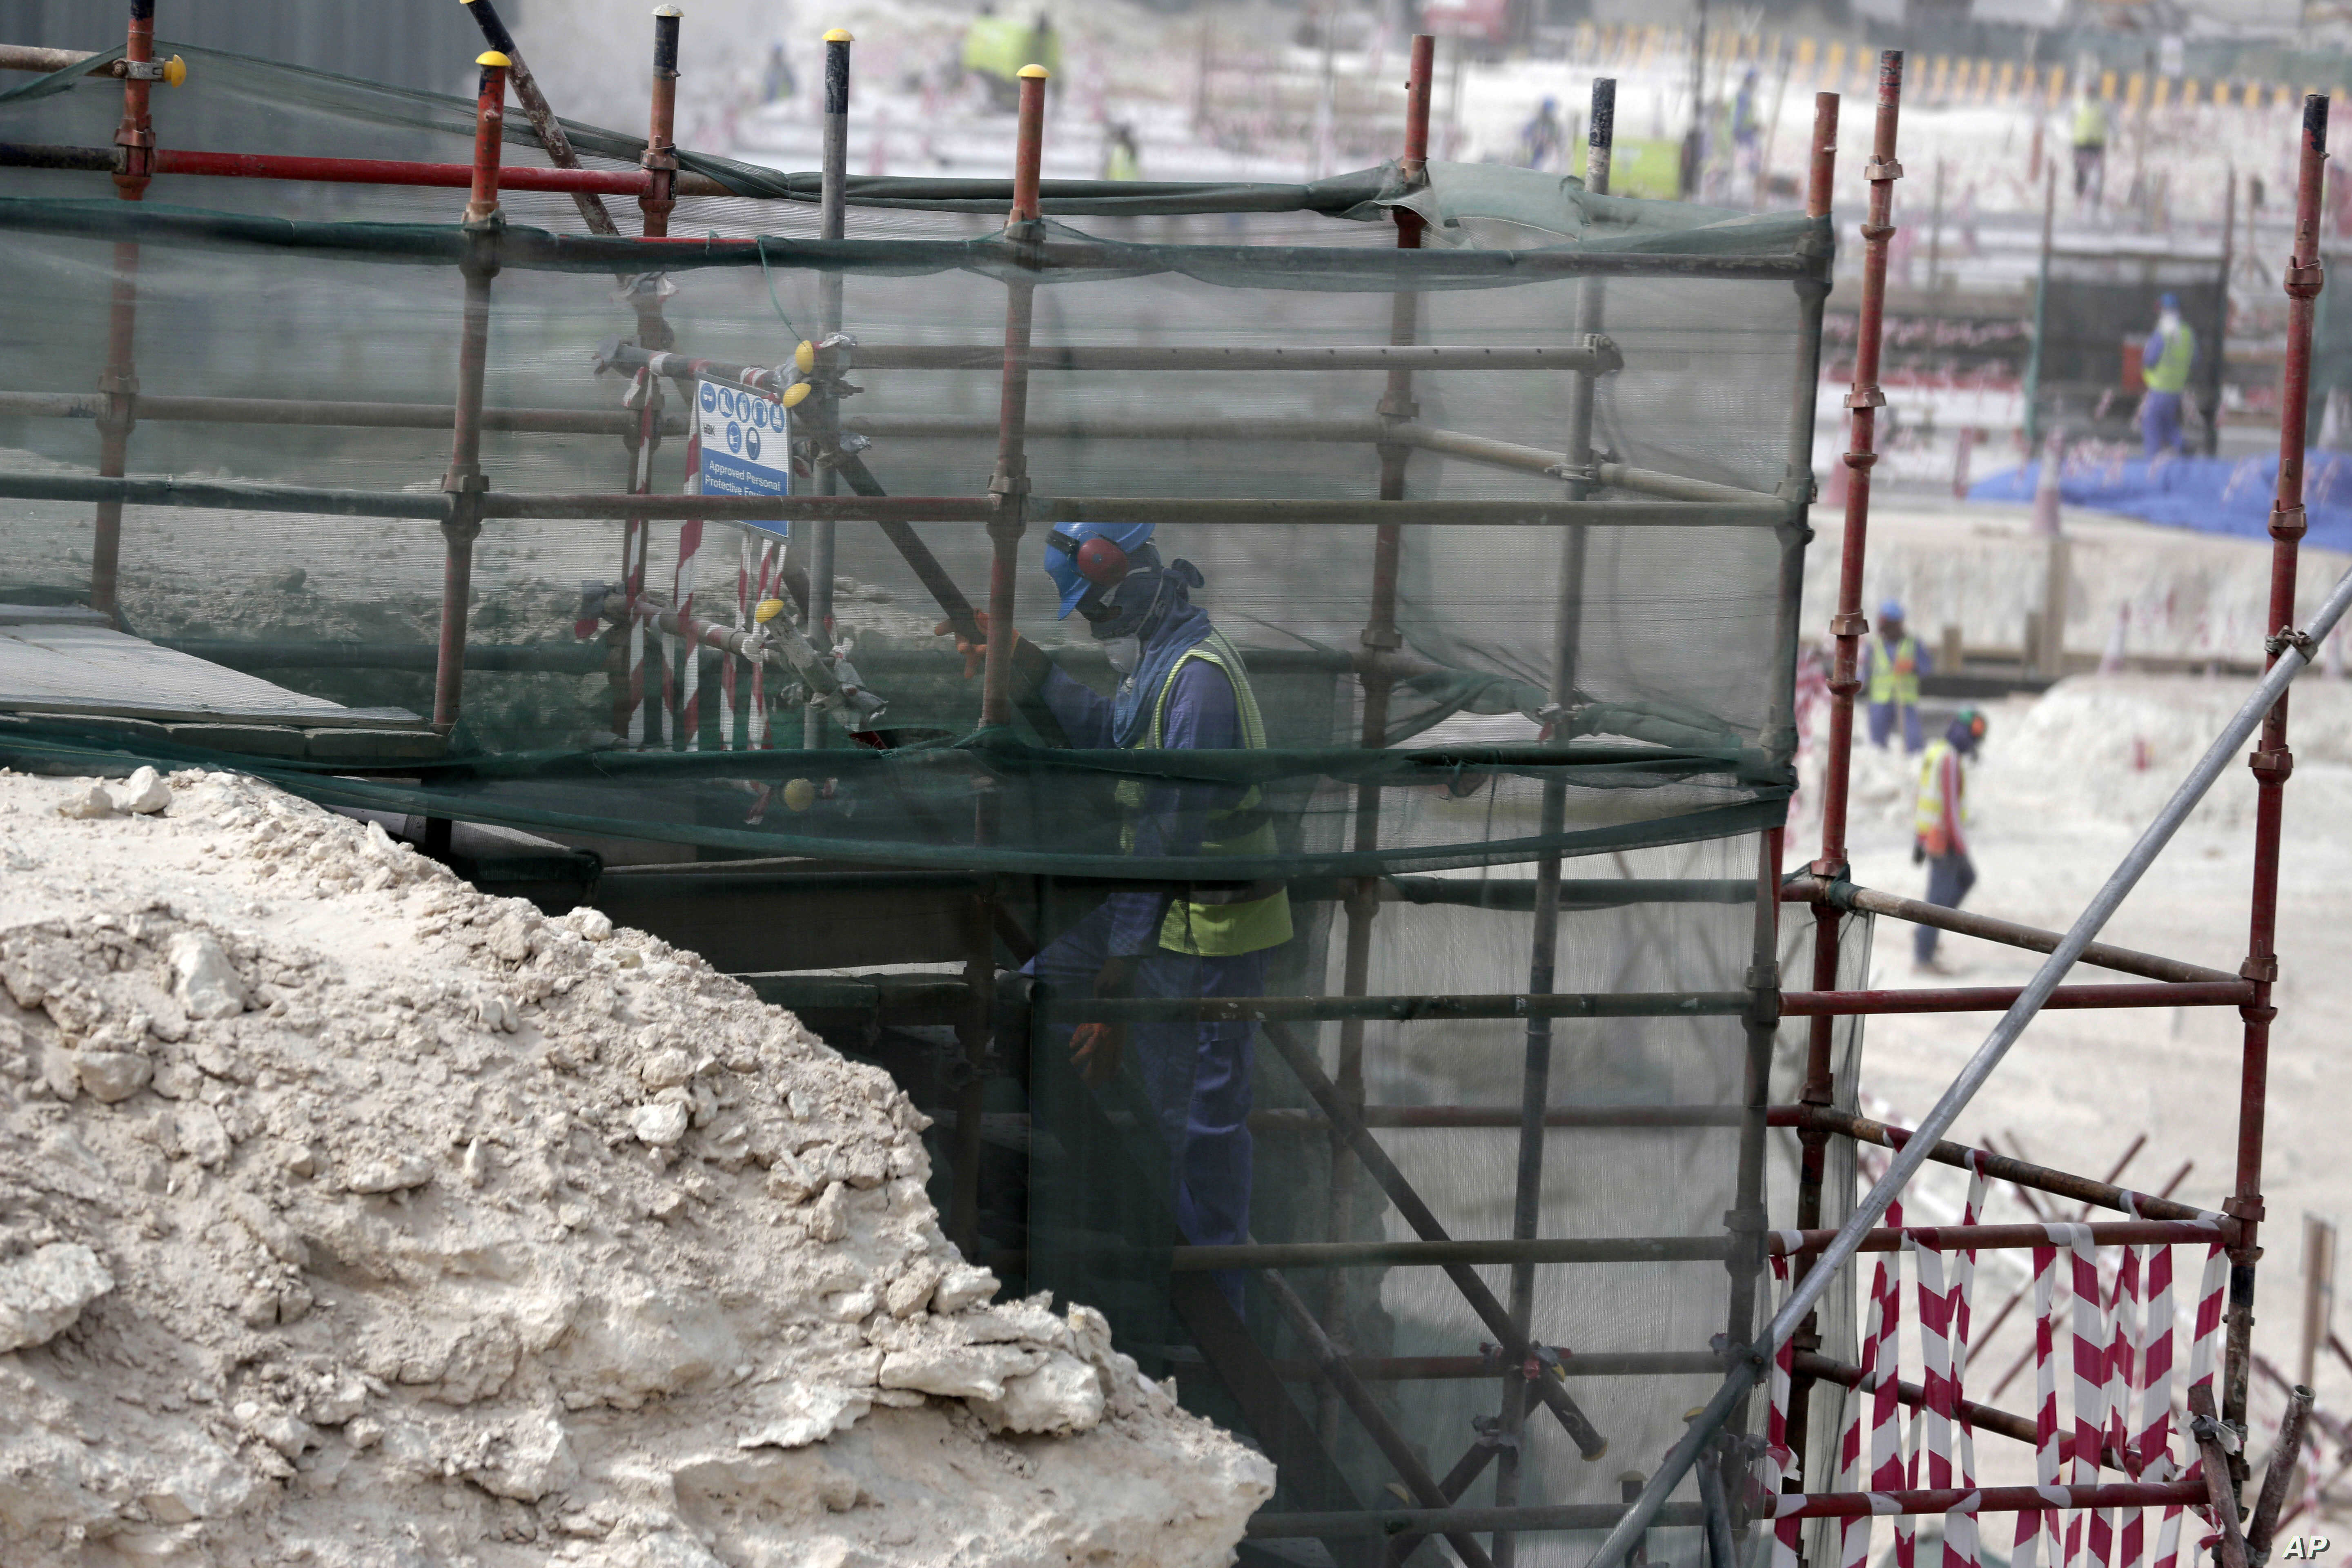 Report: Qatar World Cup Workers Pay Recruitment Fees, Work